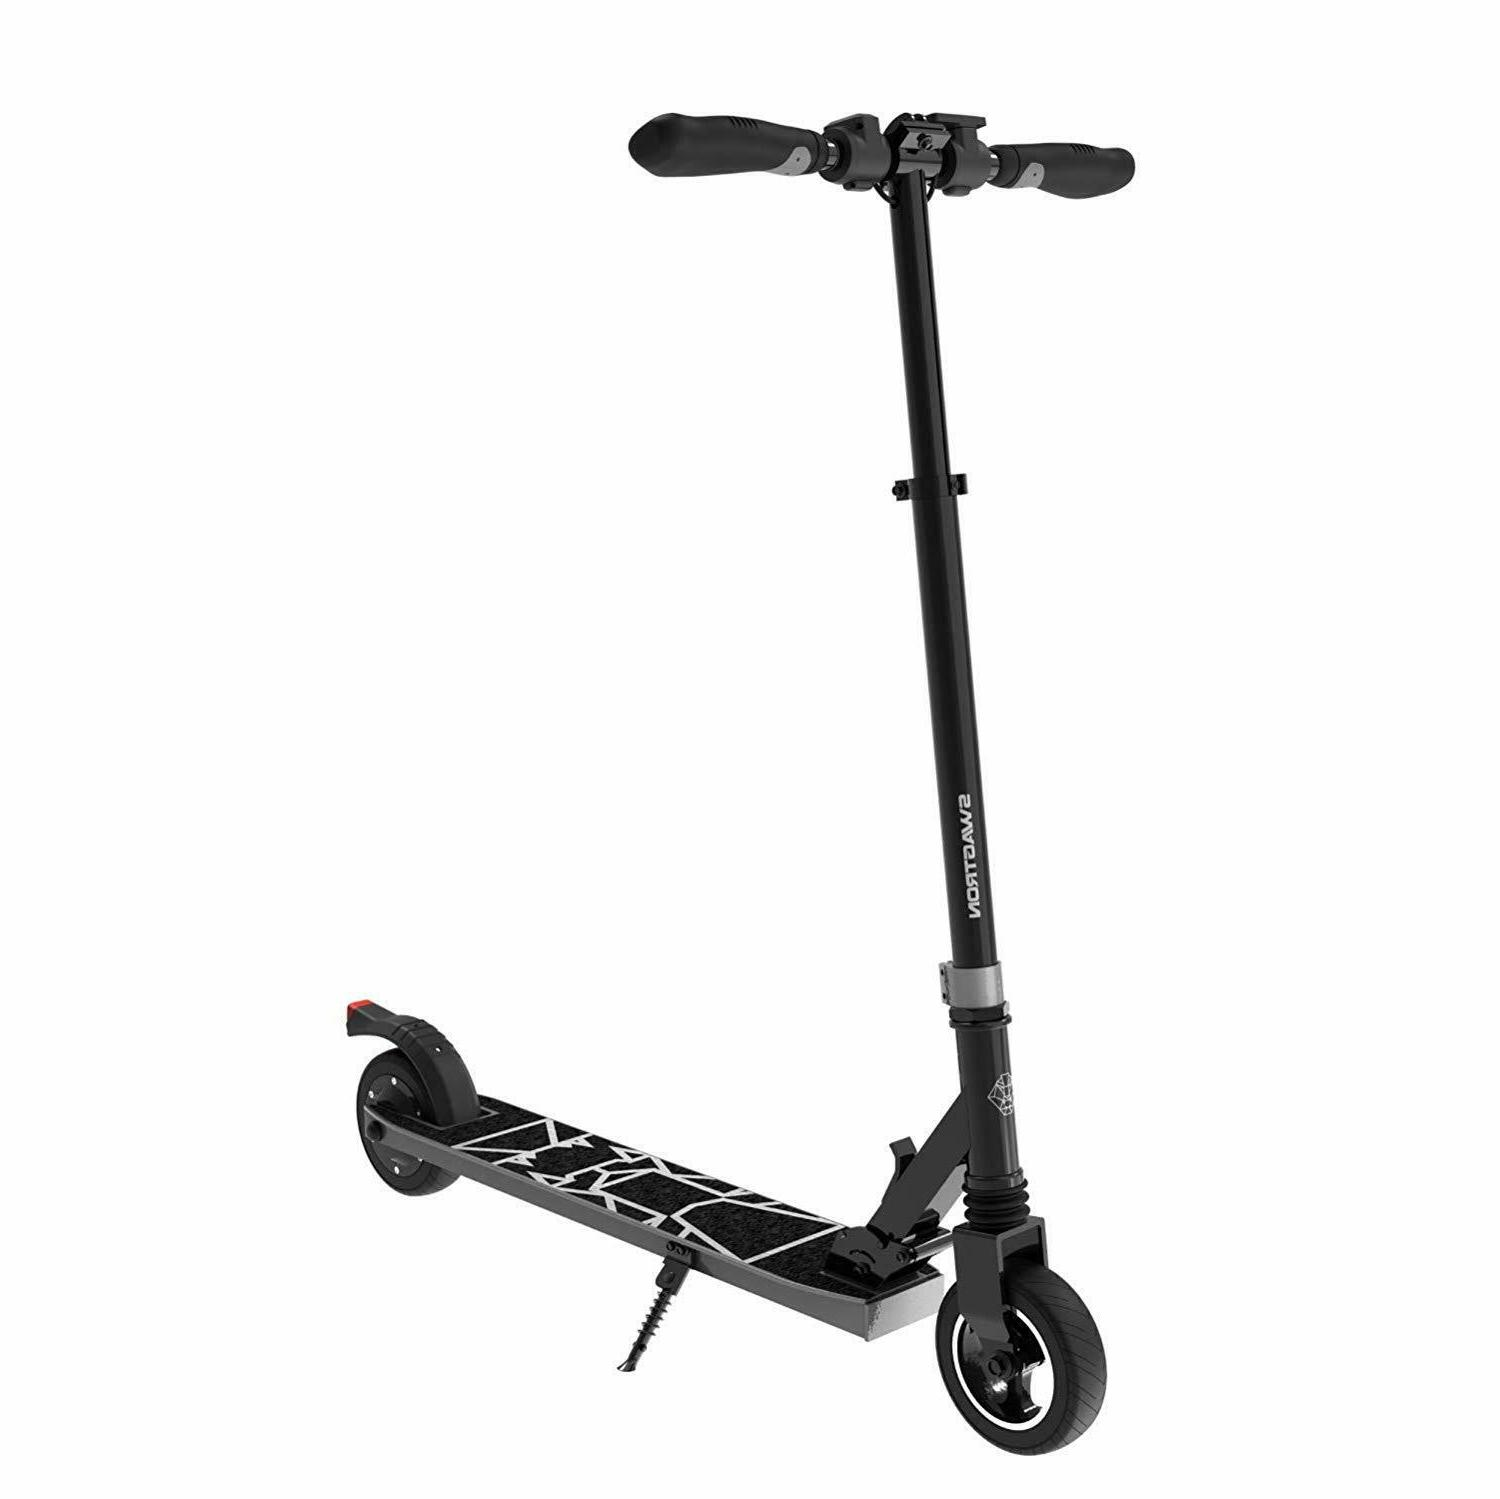 Swagtron 8 Folding Electric Scooter for Teens Cruise Quiet